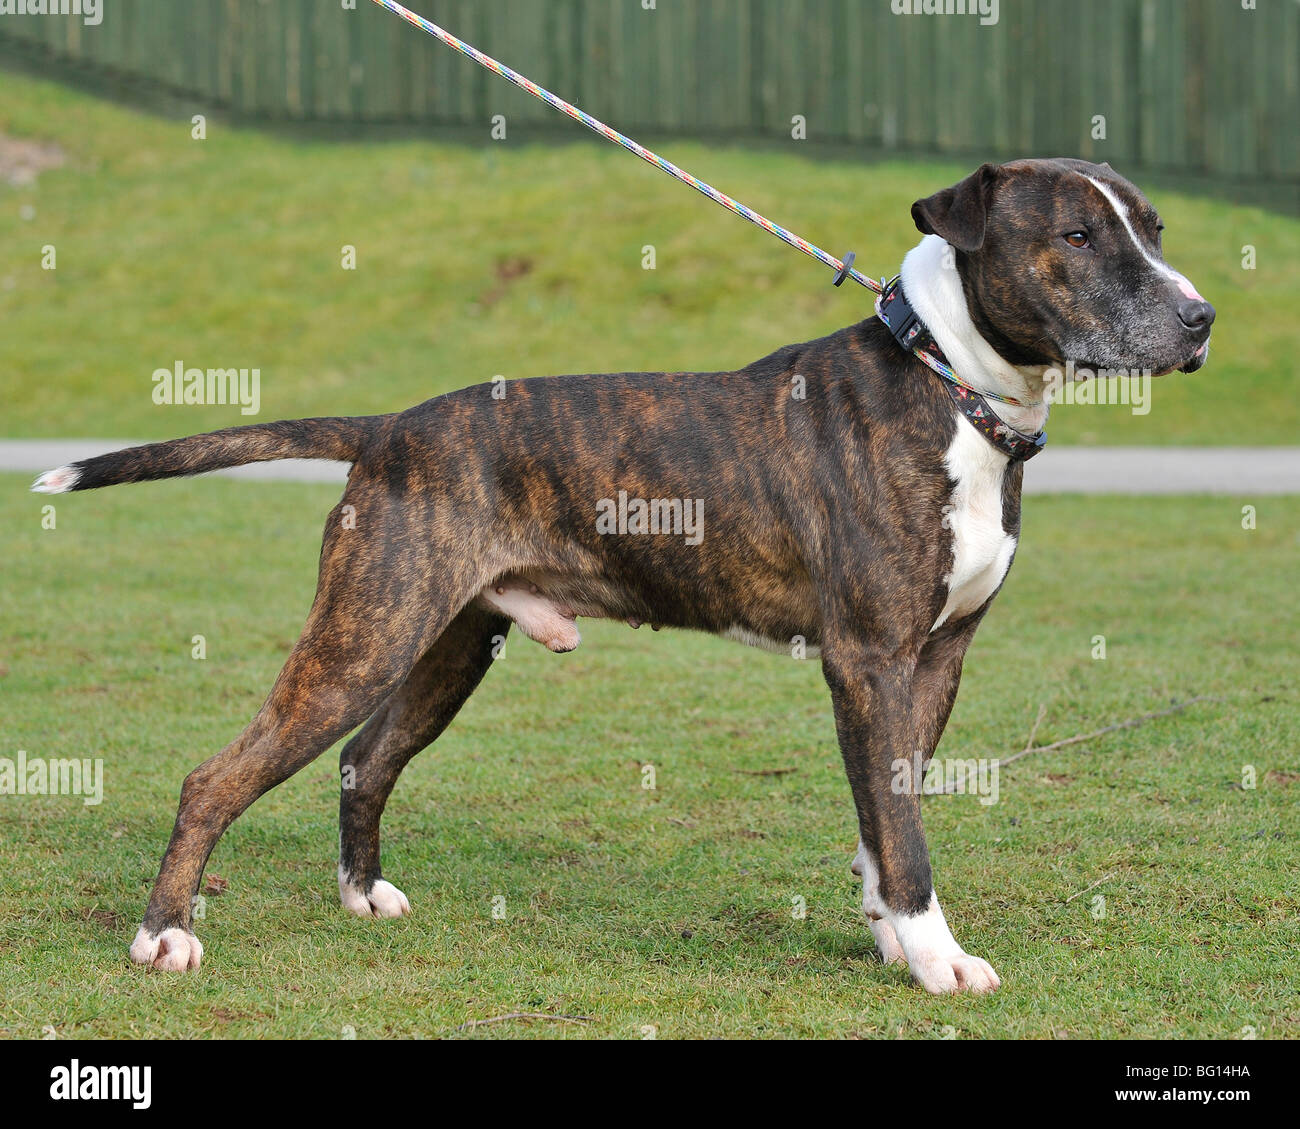 american pitbull terrier standing full body - Stock Image